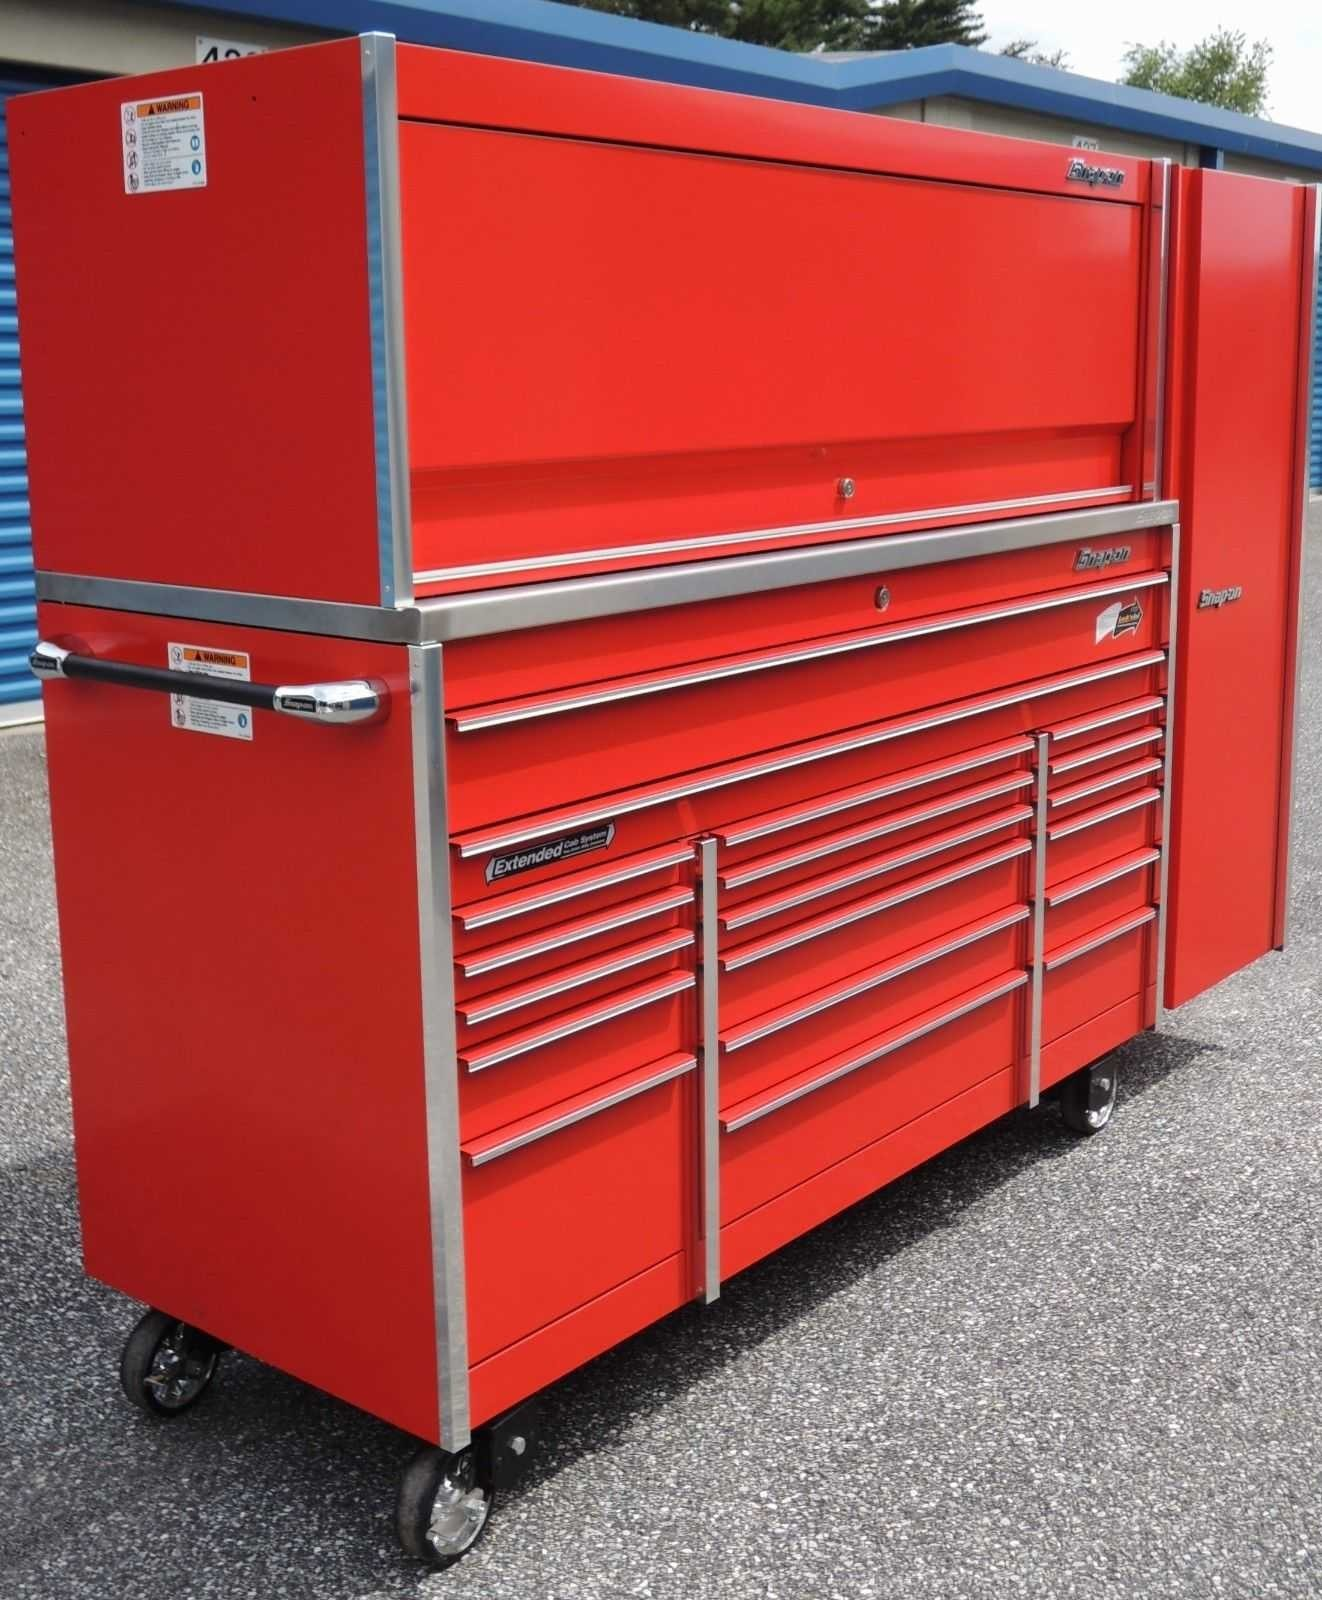 Bank Lockers Los Angeles: Snap On KRL1033 Red Tool Box